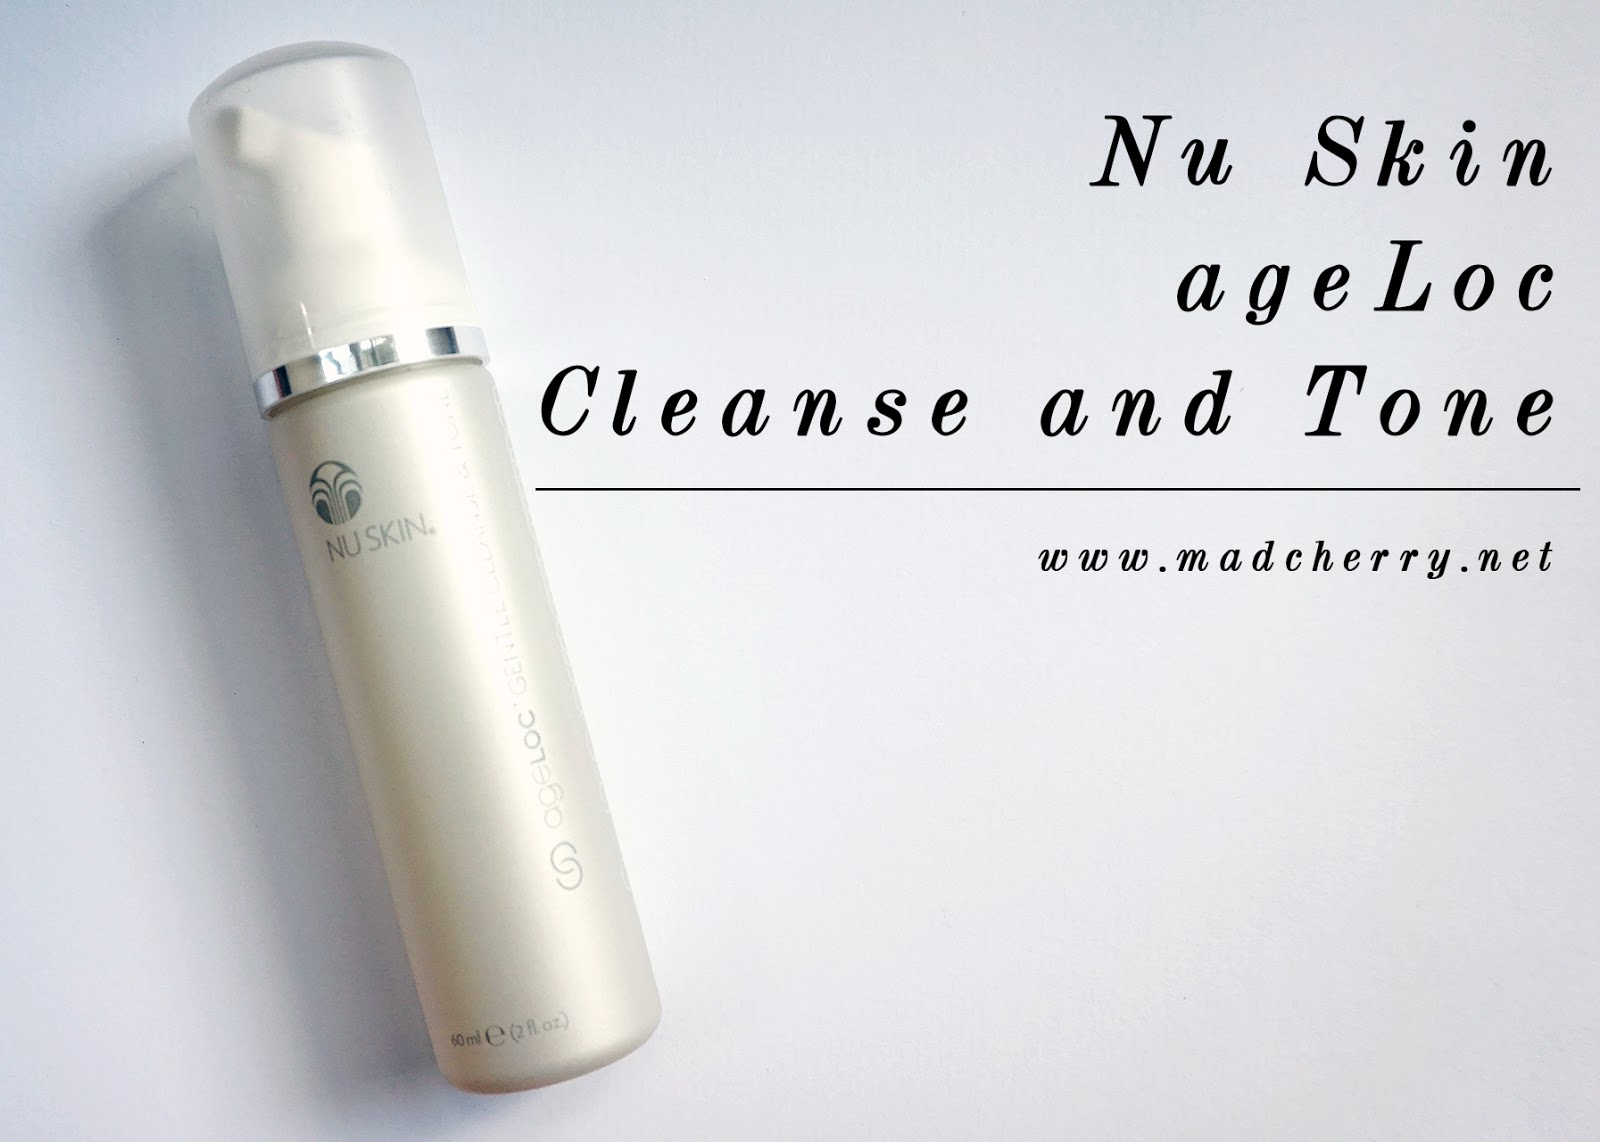 Nu Skin ageLOC Gentle Cleanse and Tone * | Mad Cherry